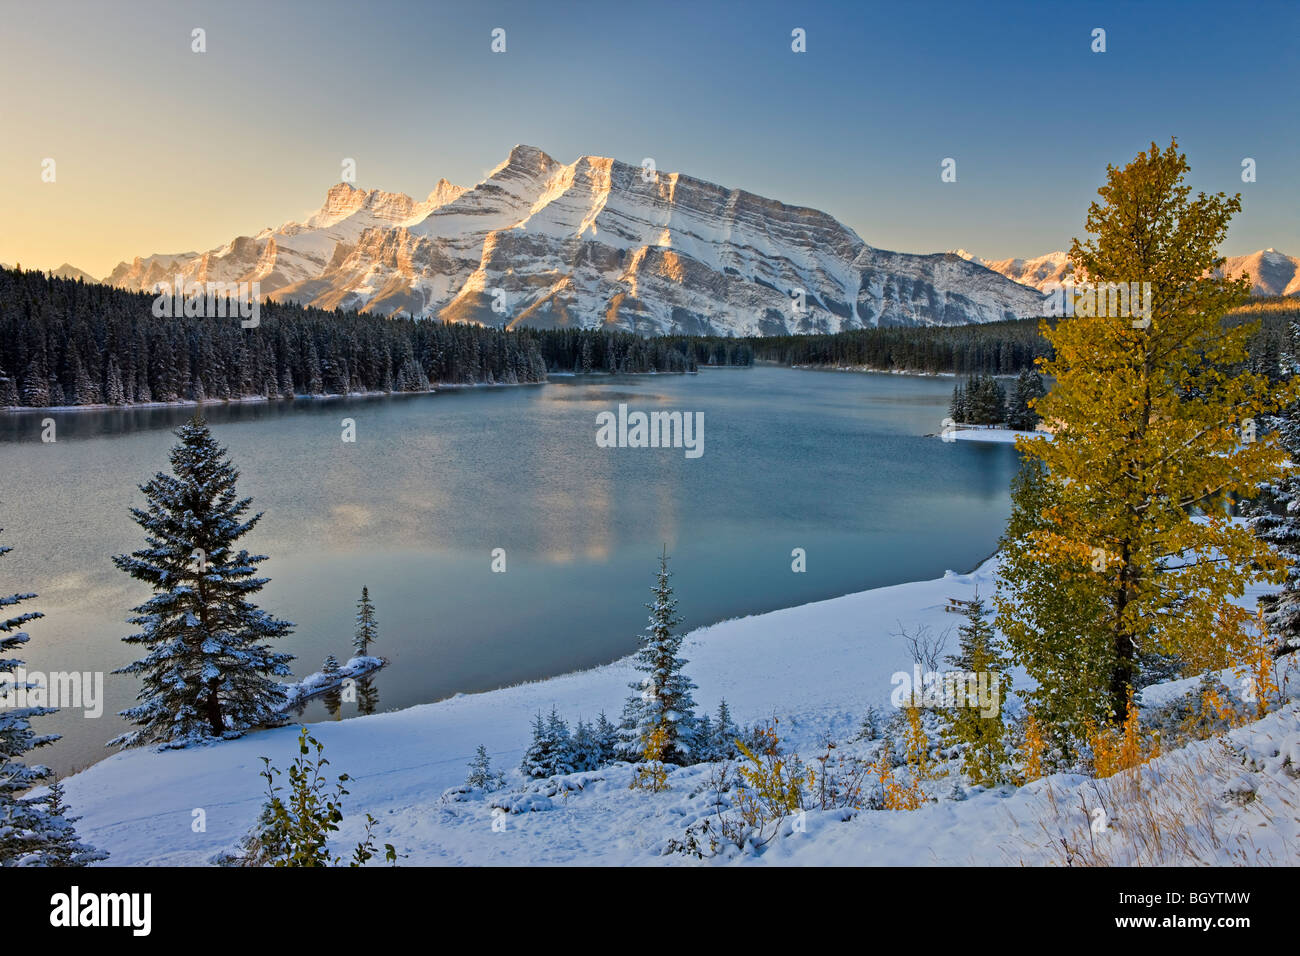 Two Jack Lake and Mt Rundle in Banff National Park, Alberta, Canada. Banff National Park forms part of the Canadian - Stock Image